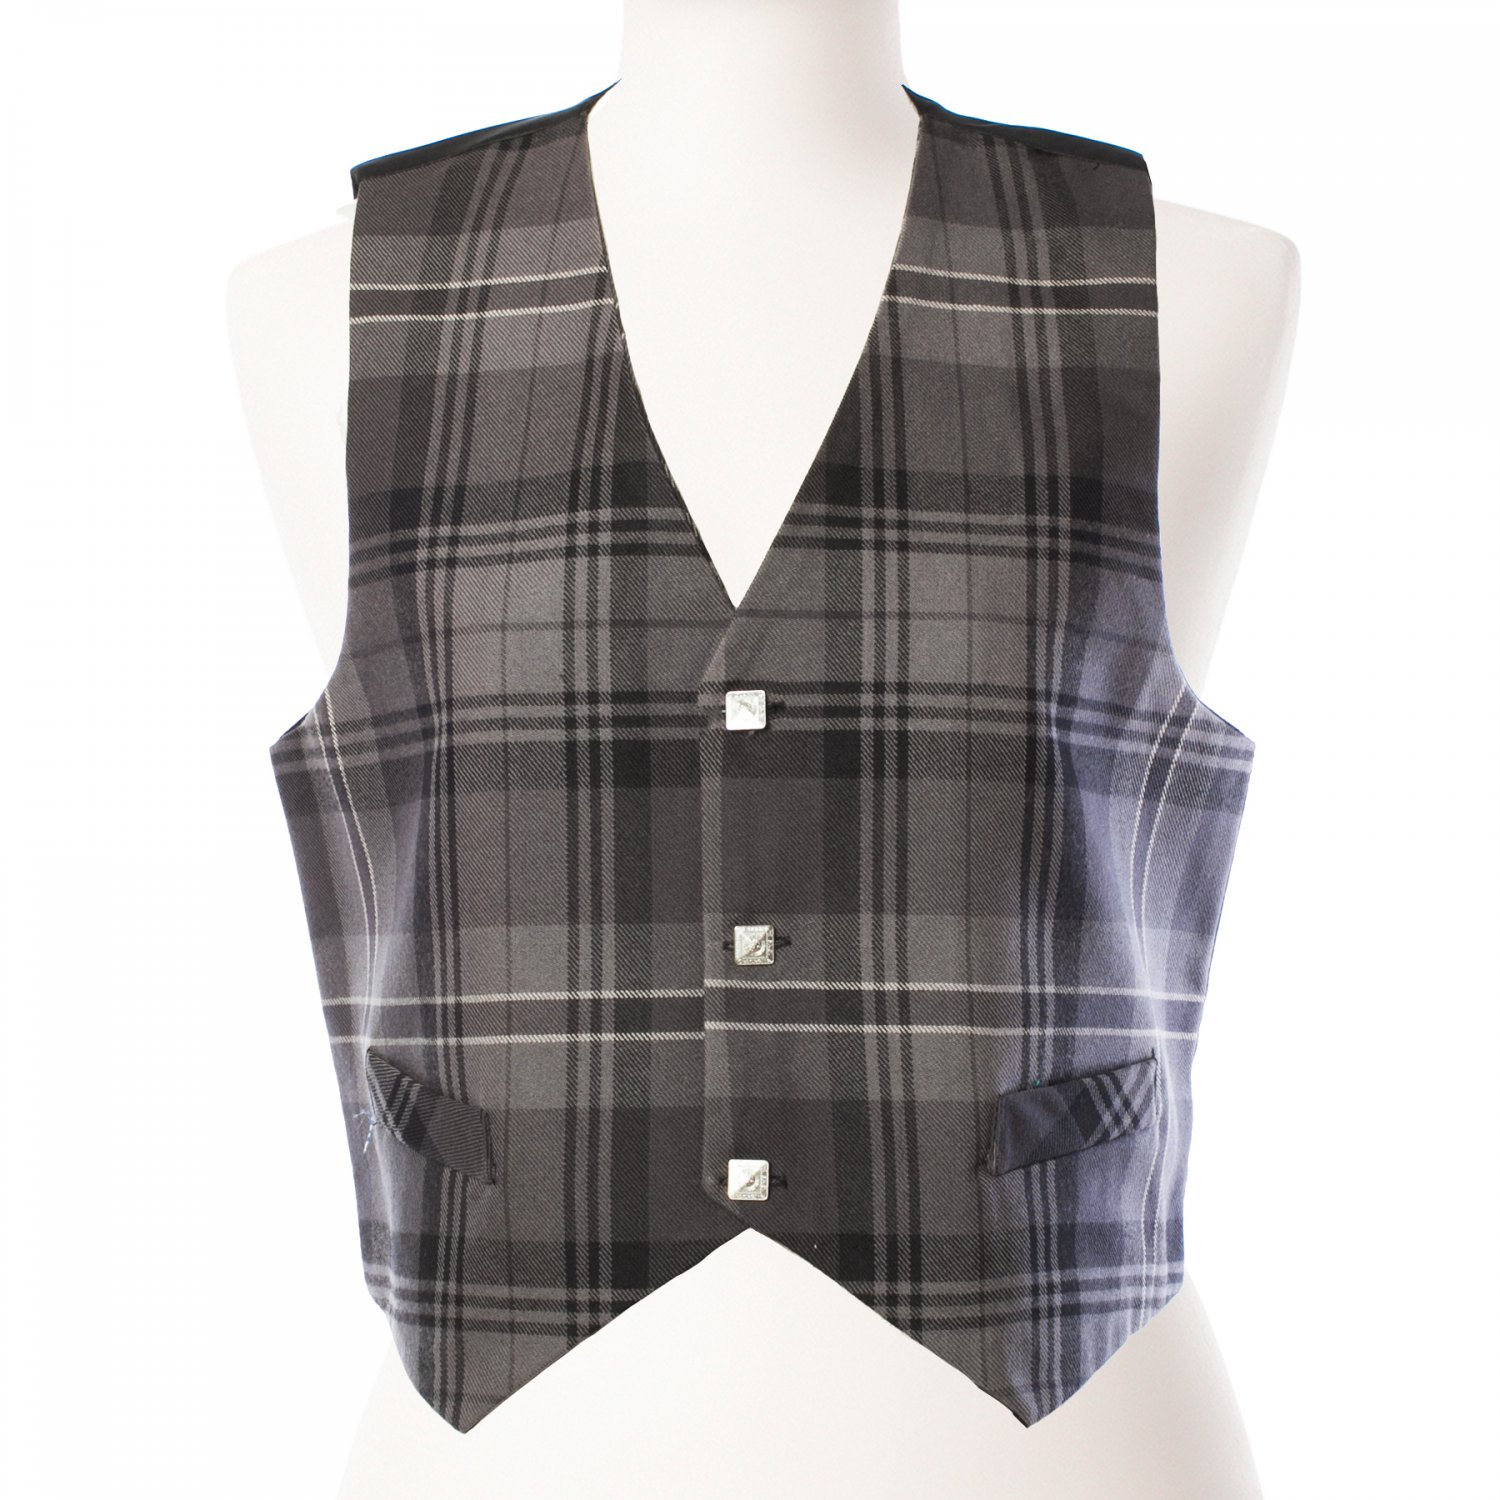 DE: Size 44 Premium Quality Gray Color Highland Tartan Plaid Vest Scottish Kilt Jacket Vest